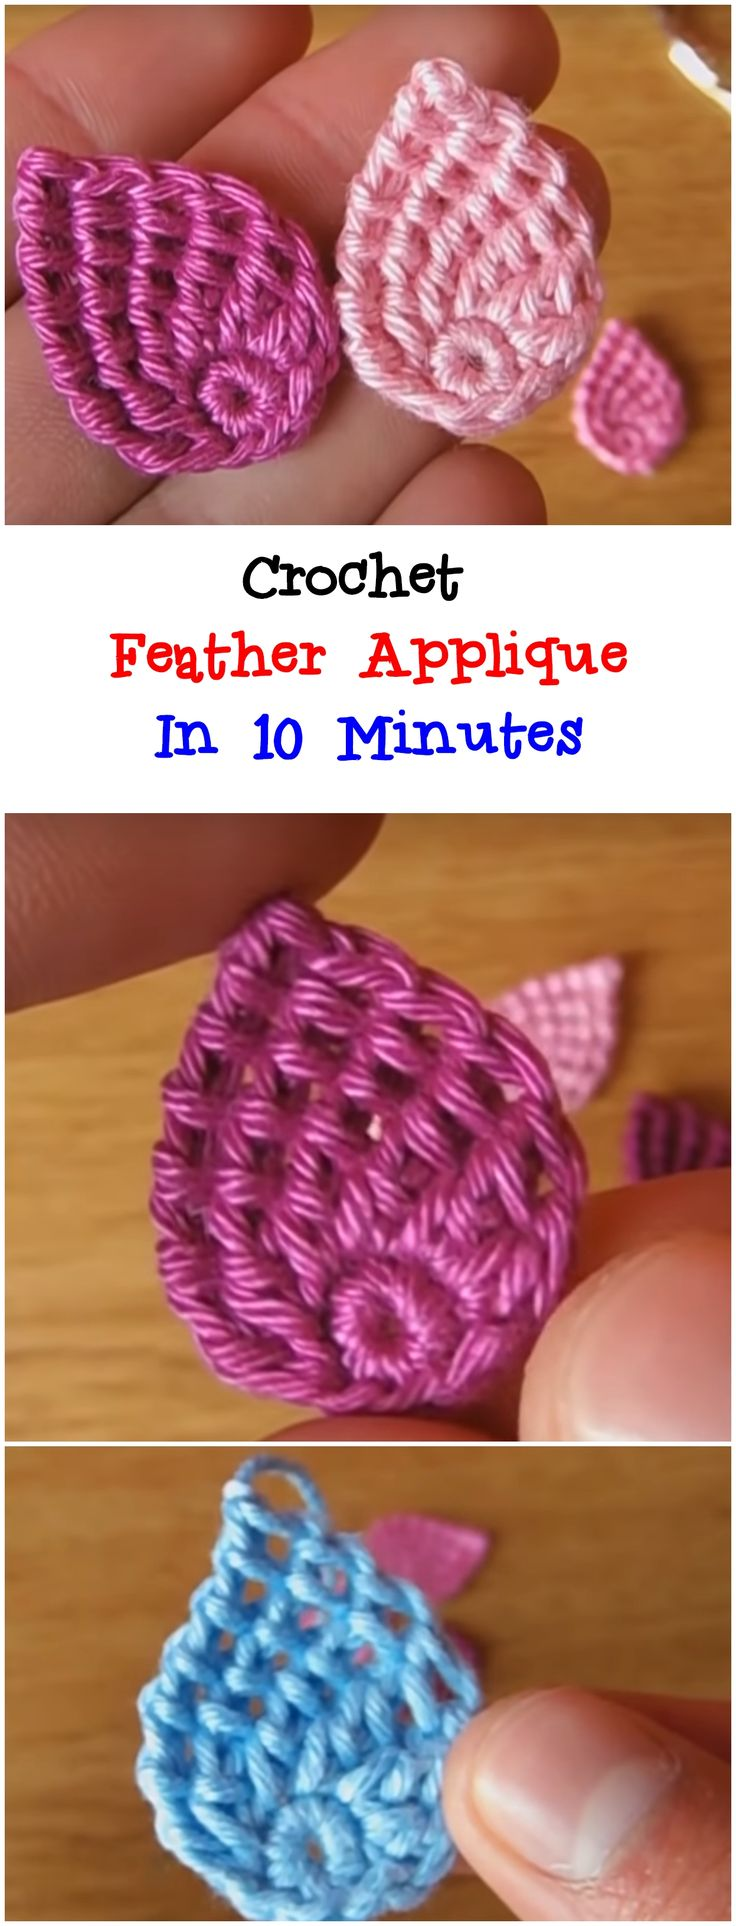 Crochet Feather Applique In 10 Minutes